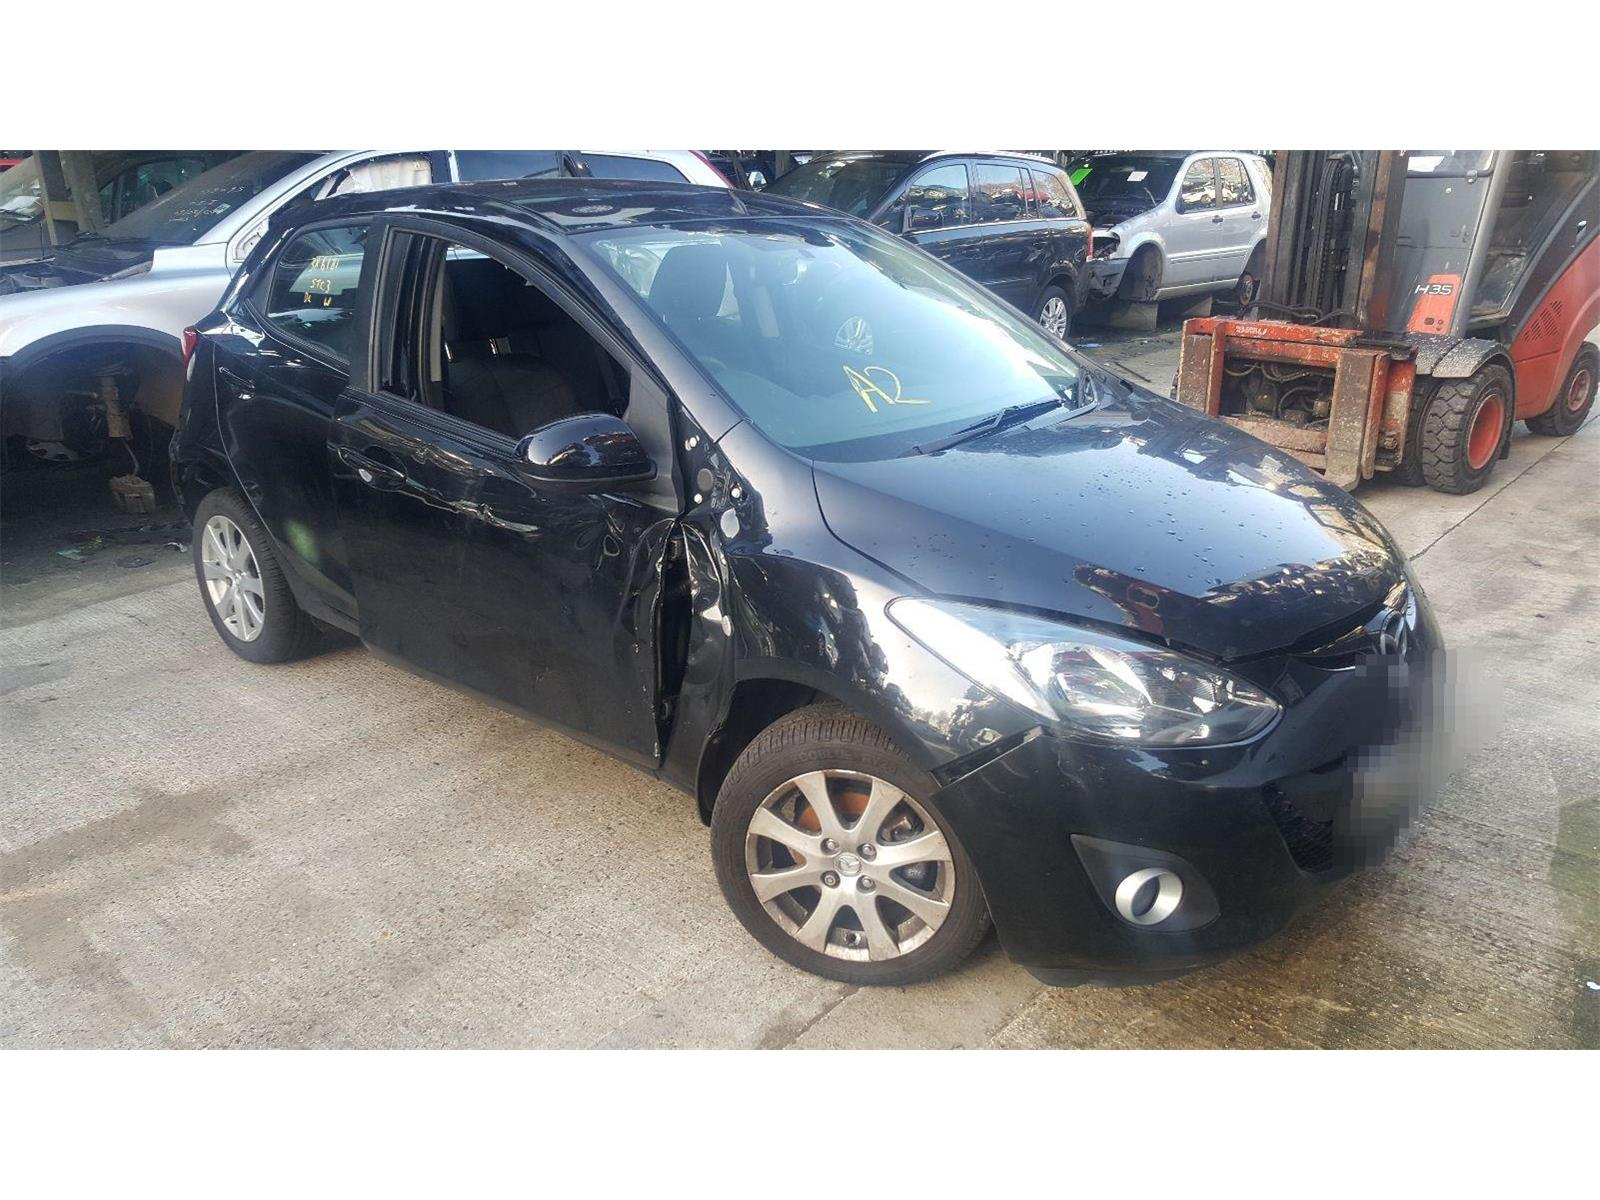 Mazda 2 2008 To 2015 Ts2 5 Door Hatchback Scrap Salvage Car For Holden Astra Ts Fuse Box Year